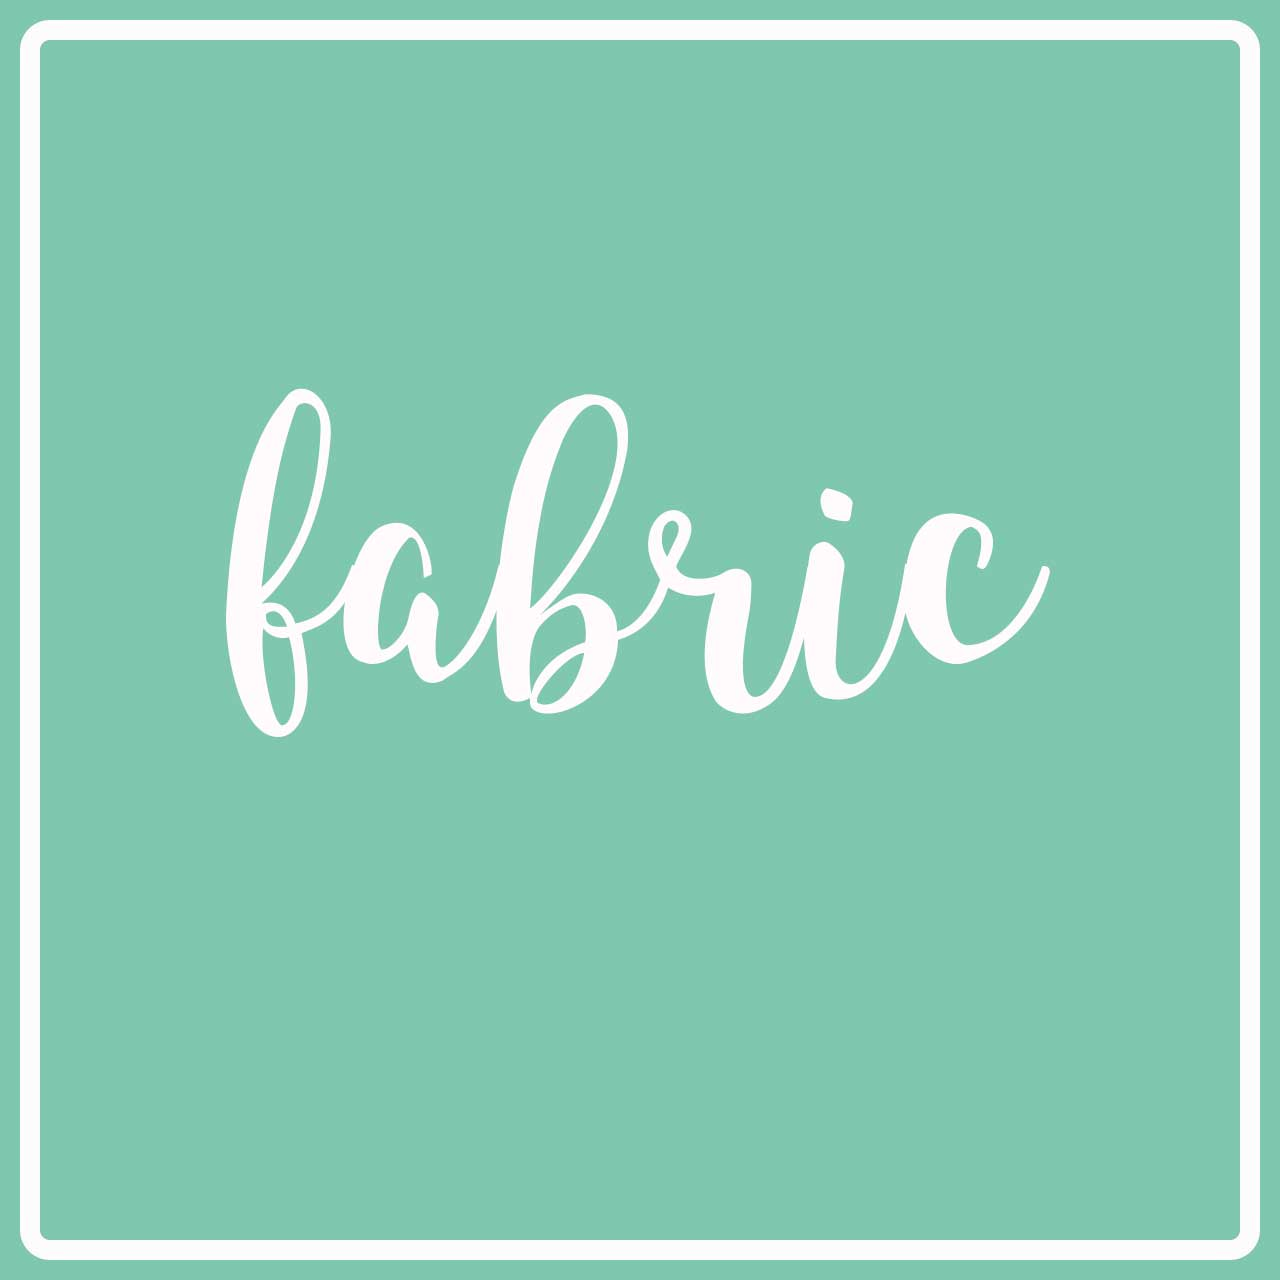 Holm Sown Online Fabric Shop - fabric by the fat quarter and metre for dressmaking and patchwork & quilting